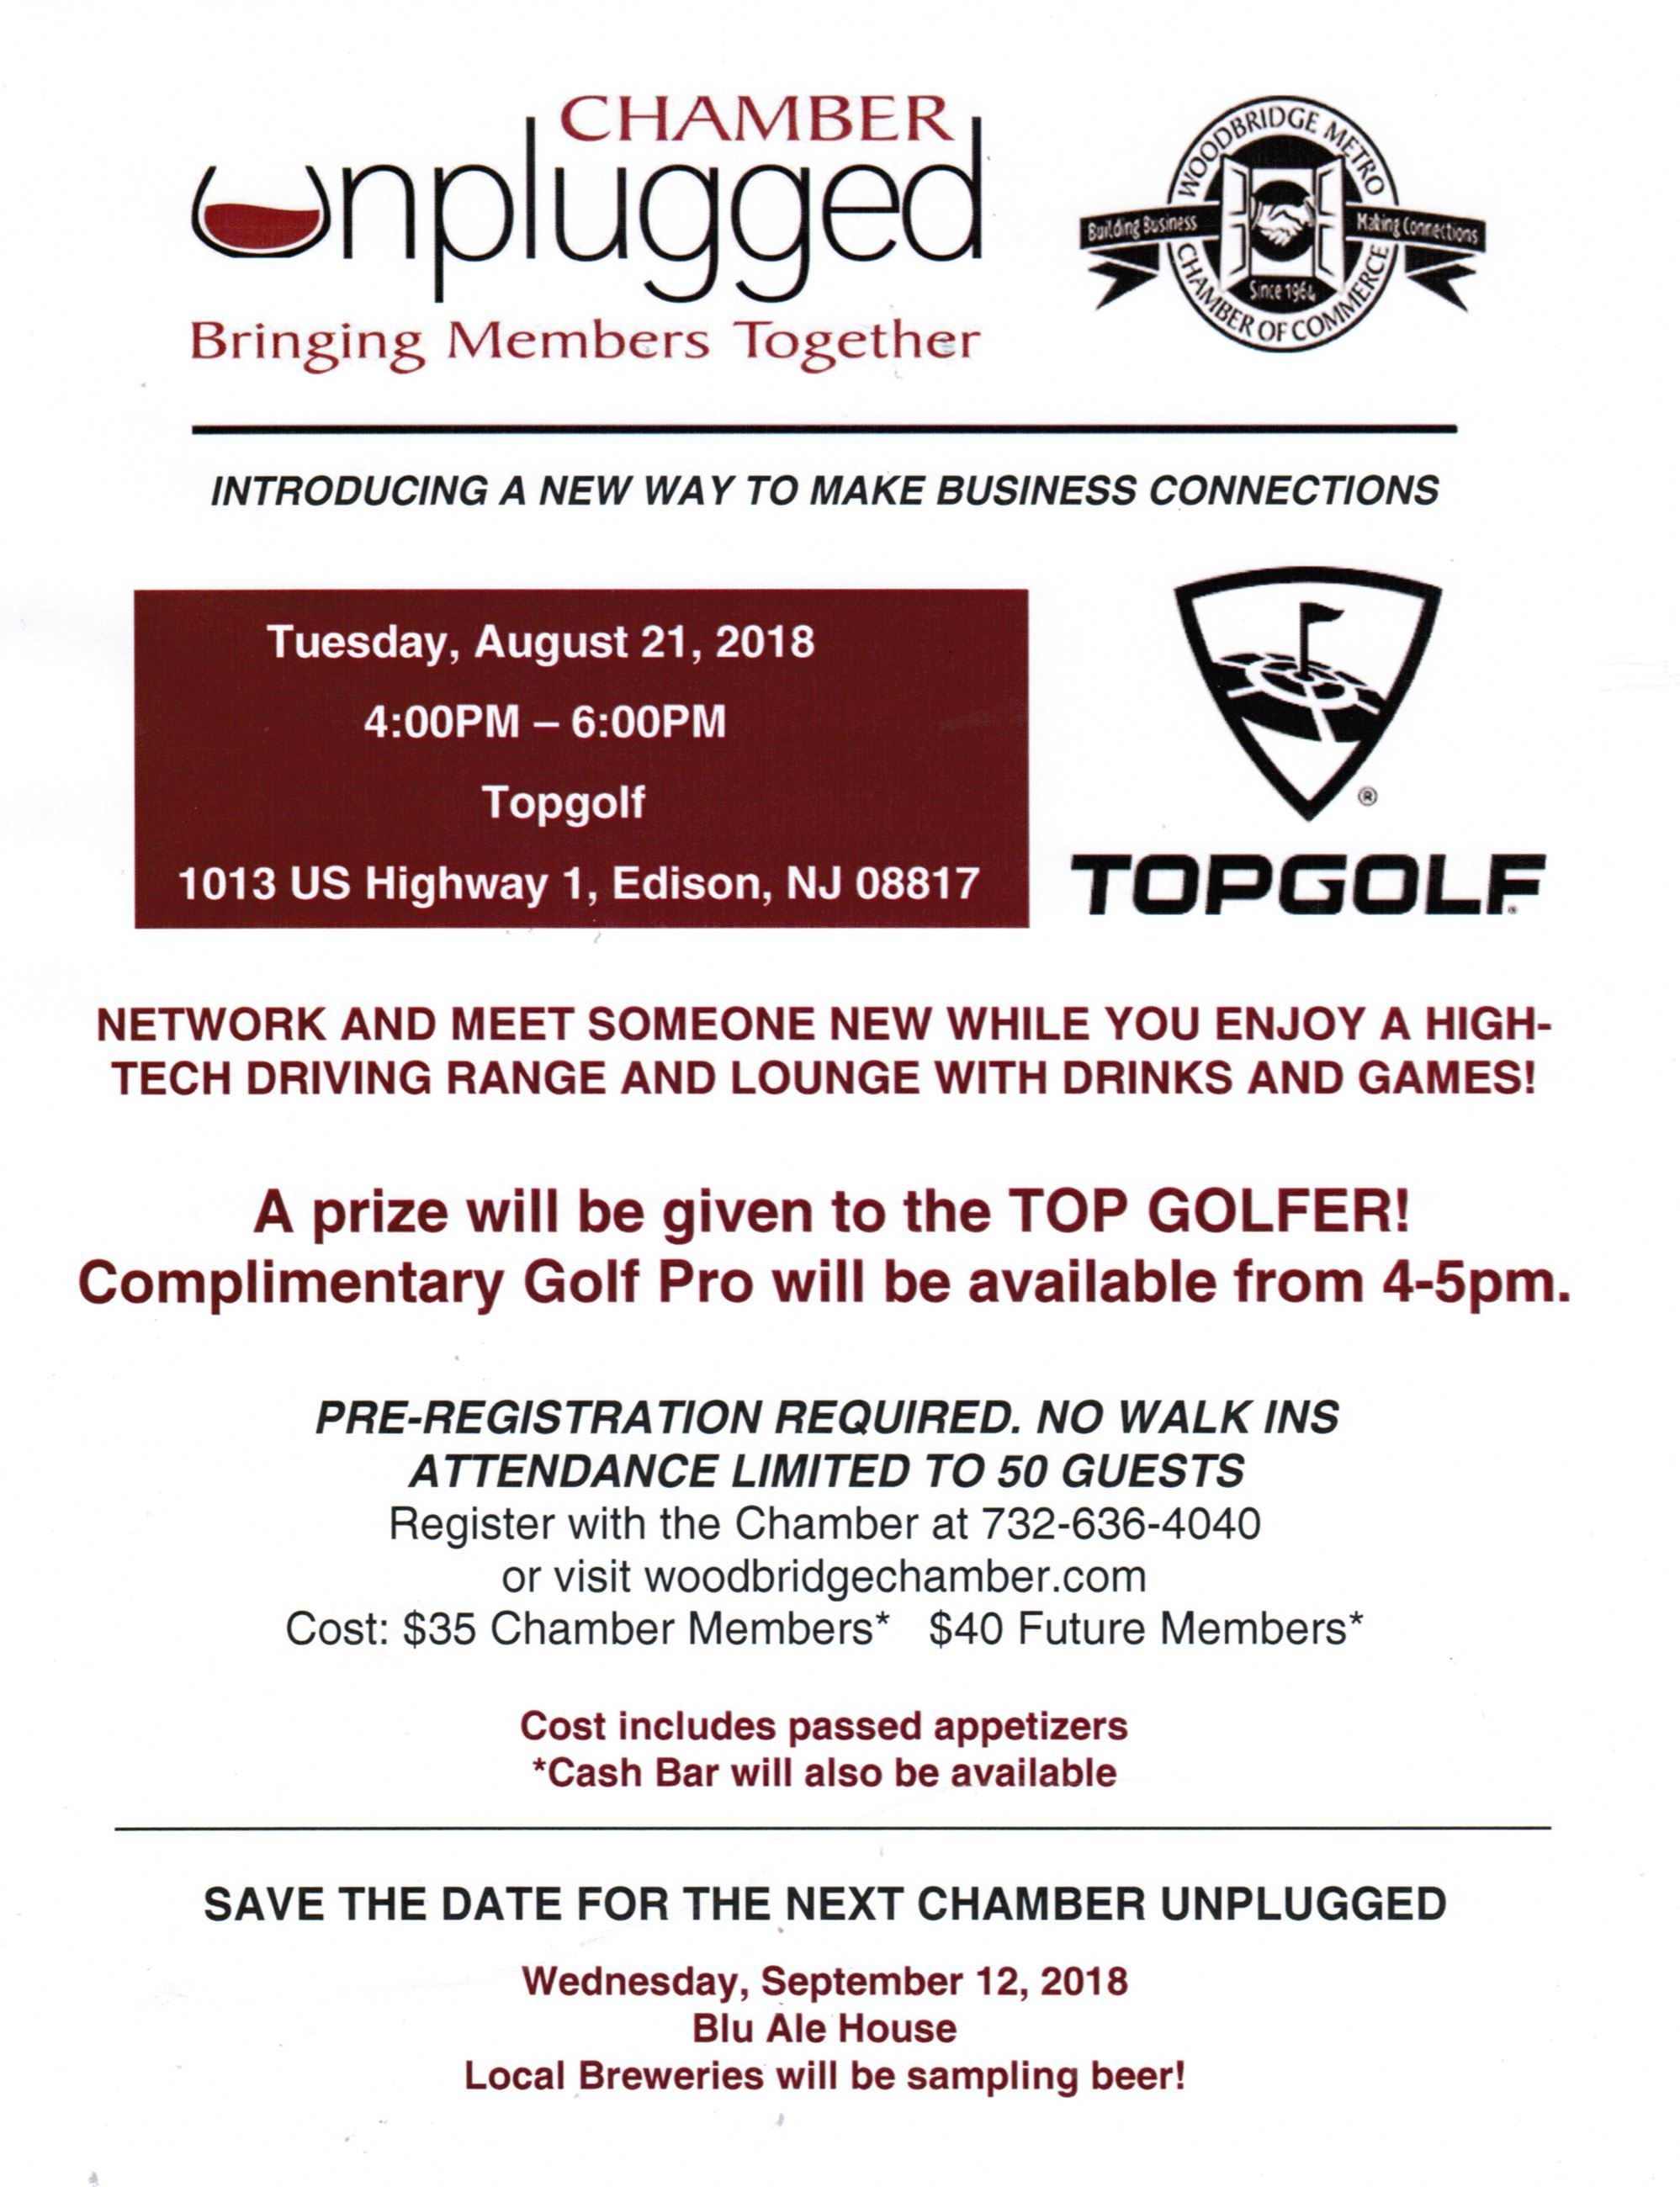 Top Golf flyer